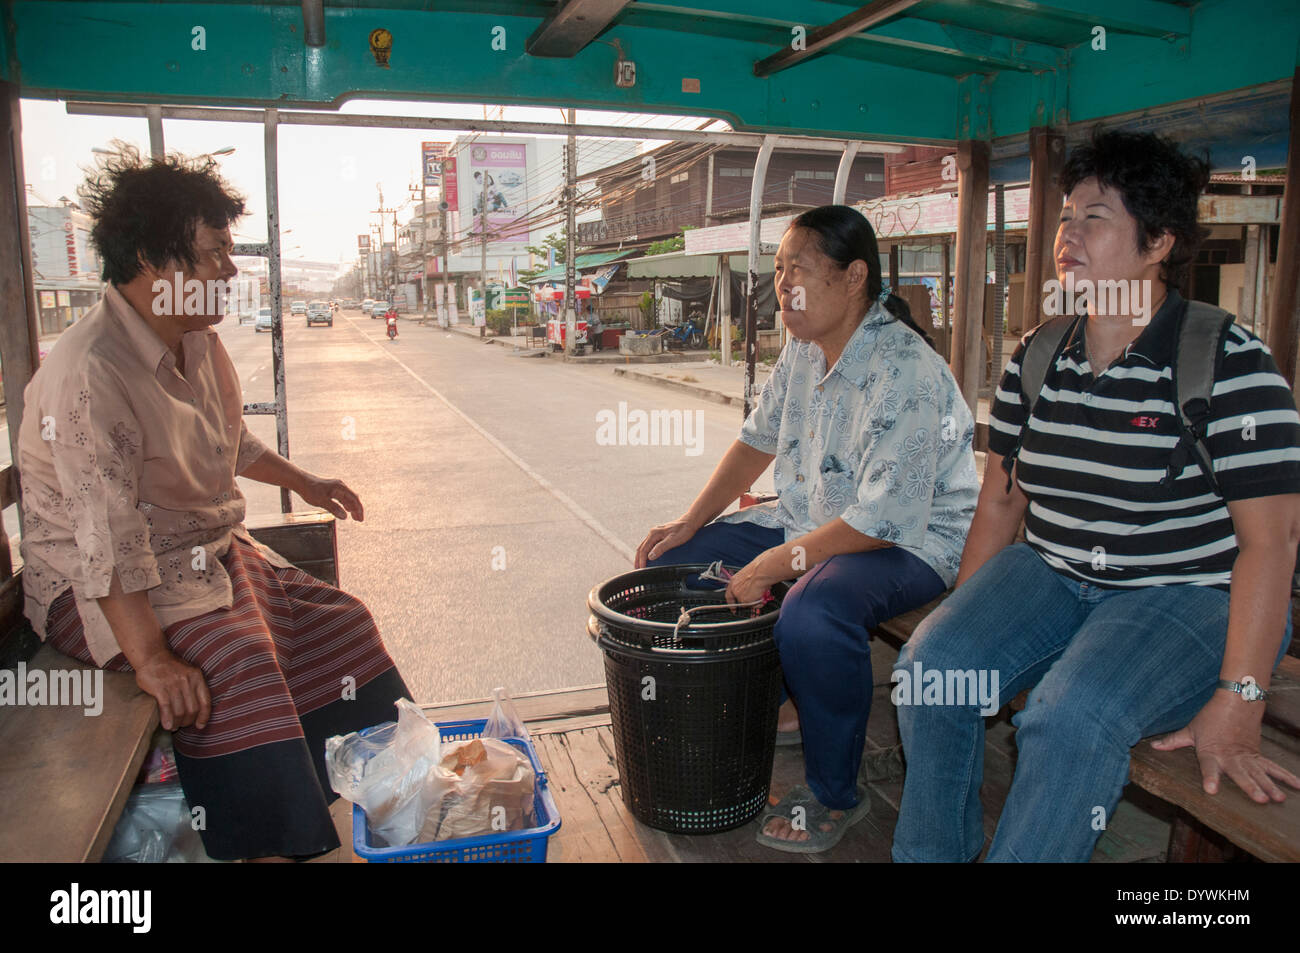 Riders aboard an old-fashioned songthaew truck in Sukhothai, Thailand - Stock Image